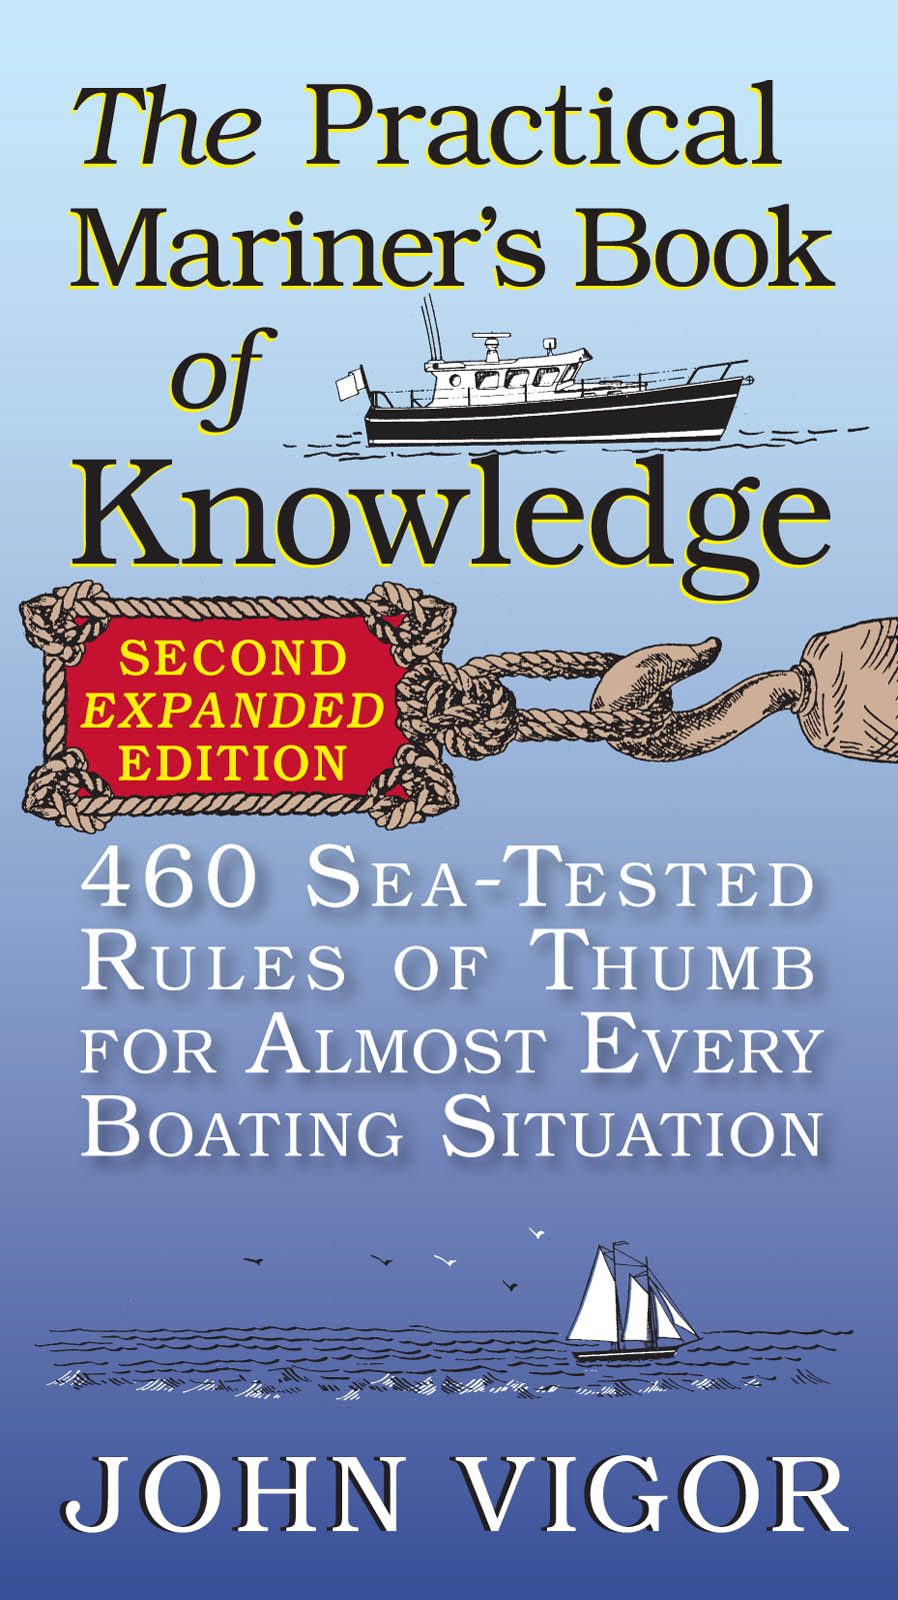 The Practical Mariner's Book of Knowledge, 2nd Edition : 460 Sea-Tested Rules of Thumb for Almost Every Boating Situation